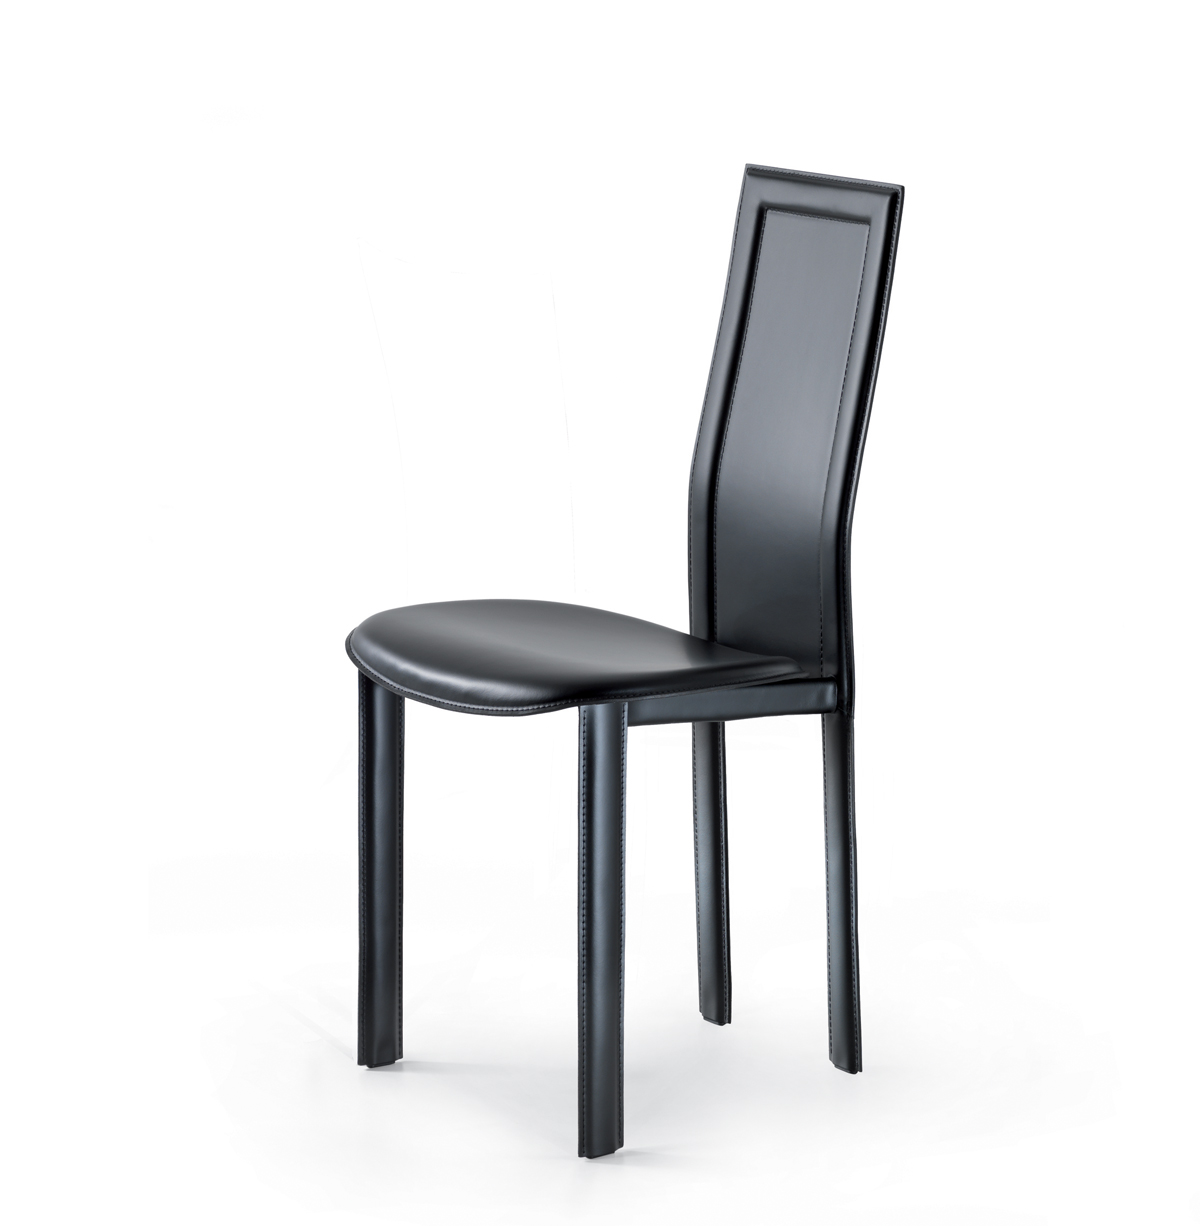 cattelan italia lara chair. Black Bedroom Furniture Sets. Home Design Ideas